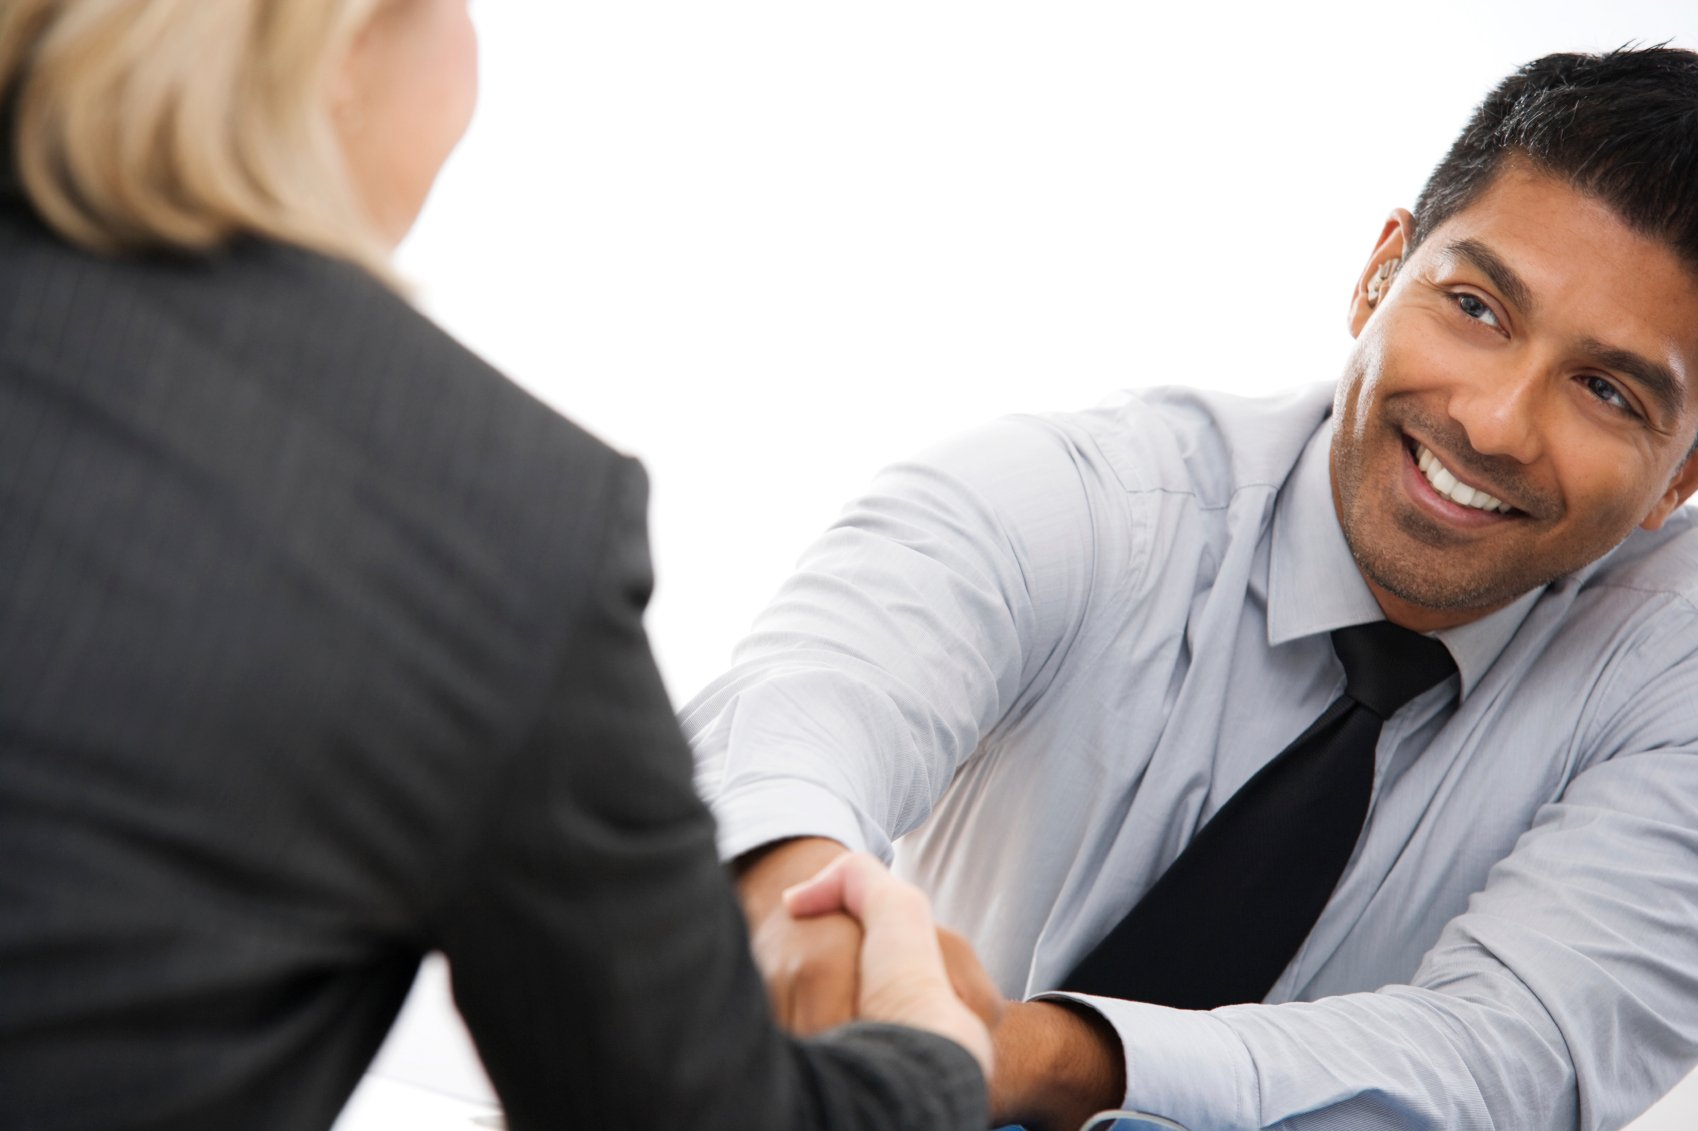 shake hands with your fear, and get round to changing your career